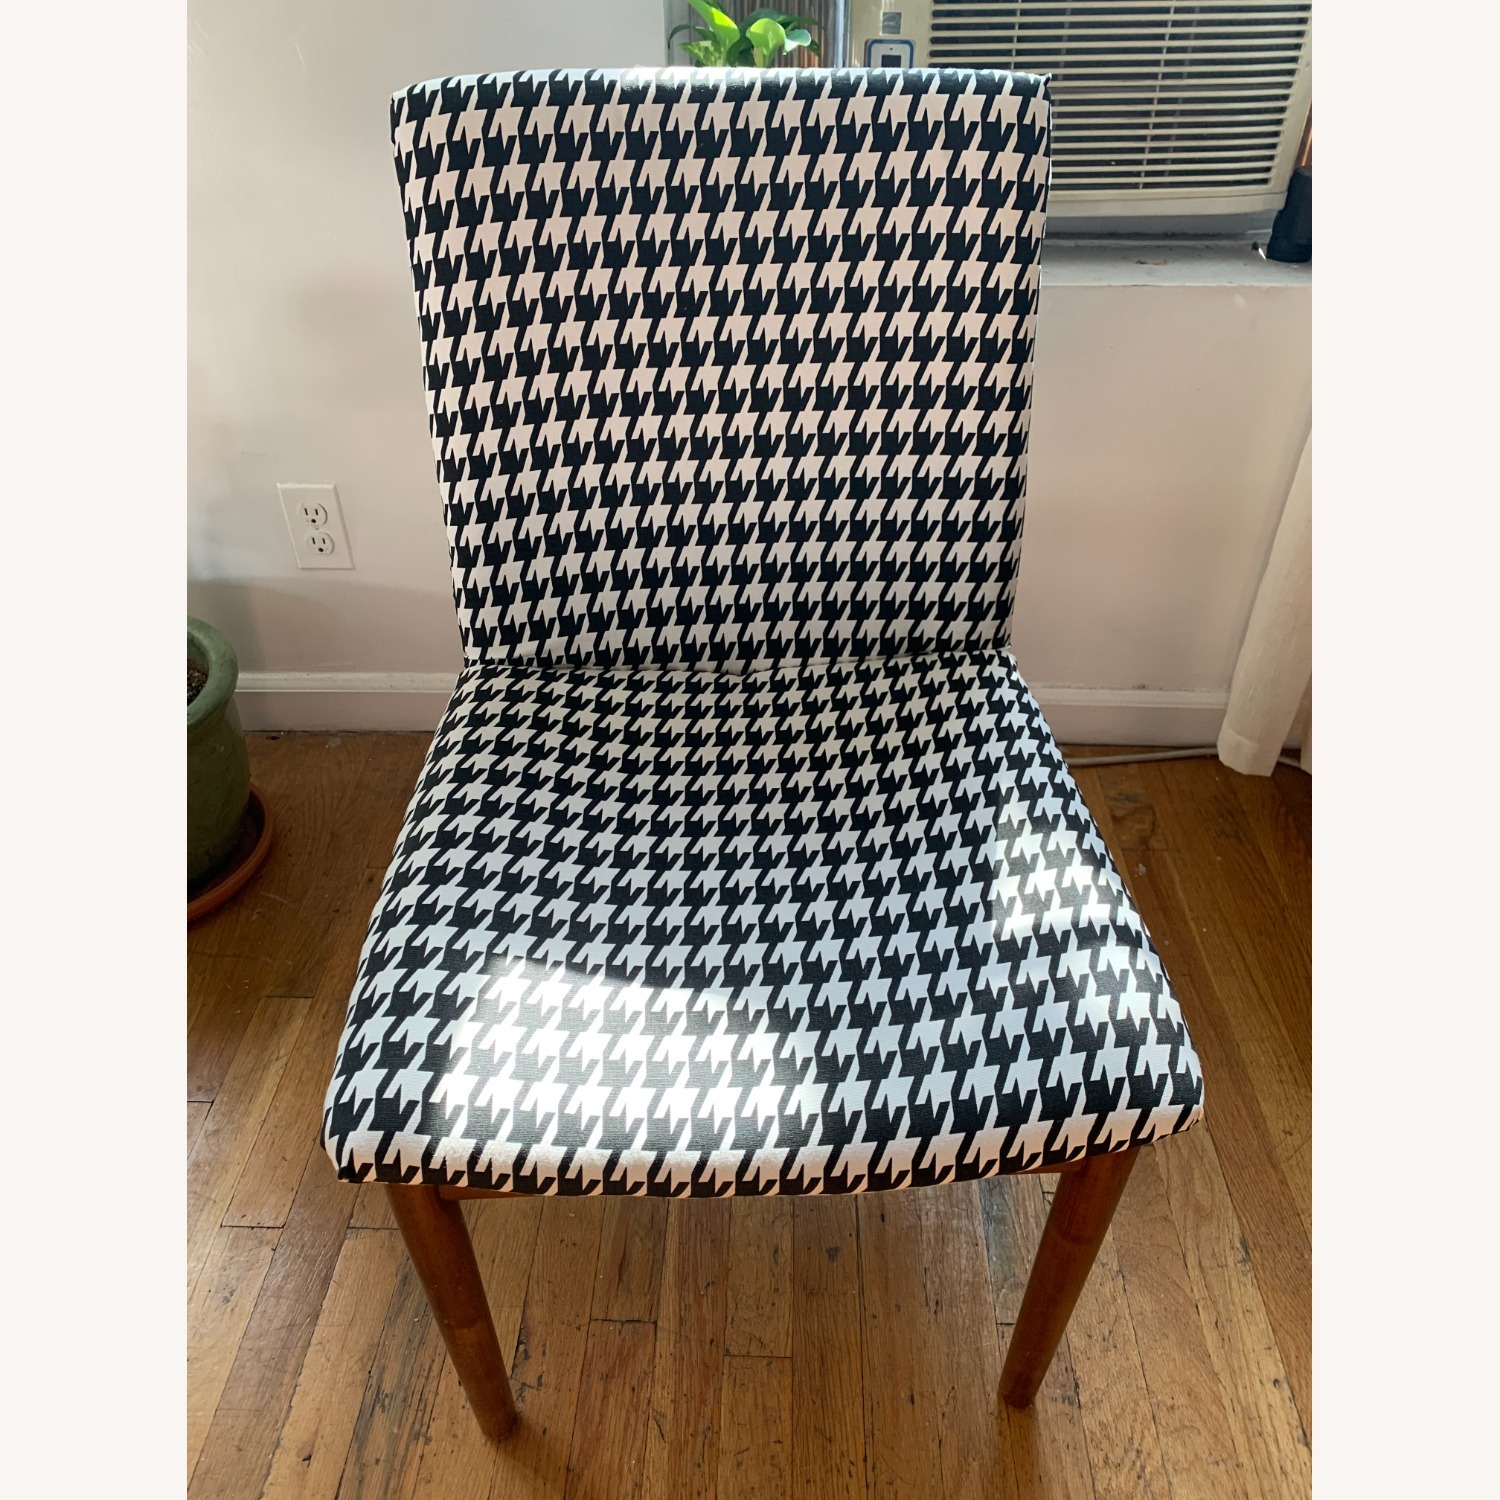 West Elm Houndstooth Customized Accent Chair - image-3